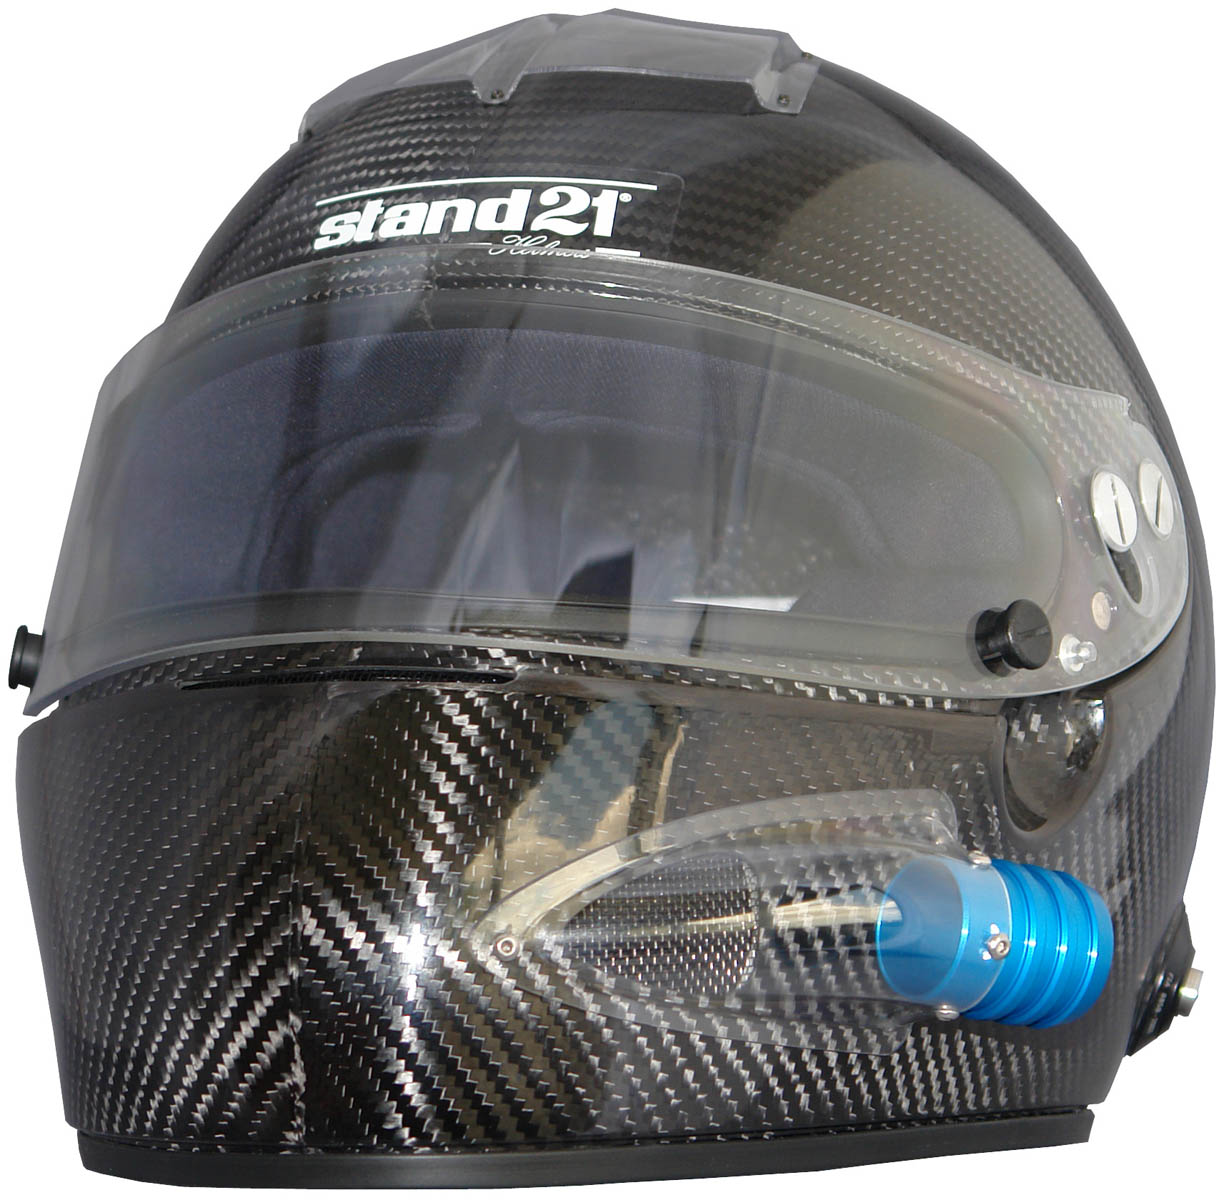 IVOS-Air Force helmet with side air intake